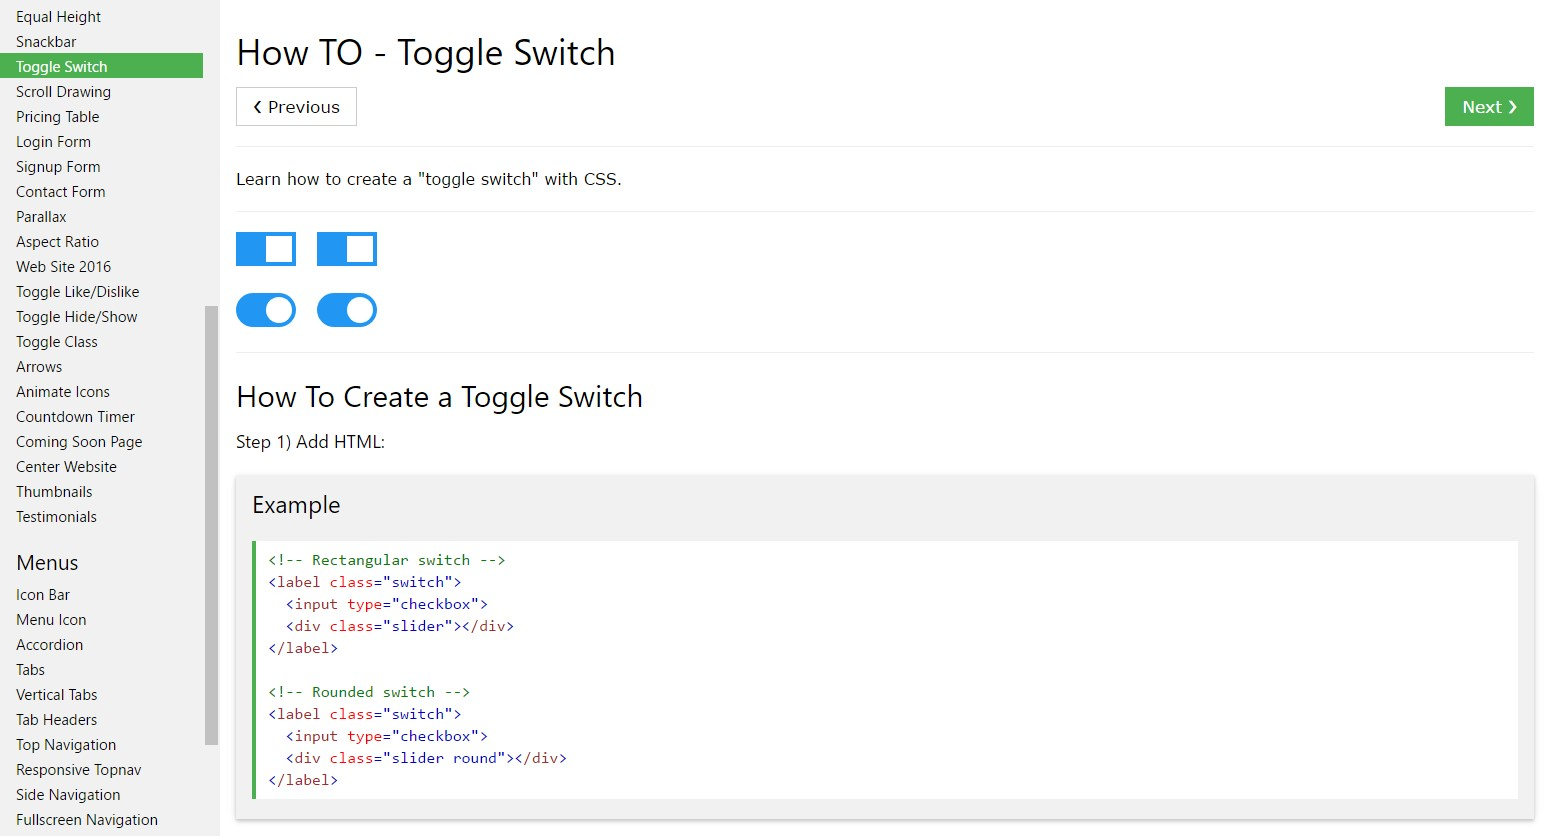 Exactly how to create Toggle Switch